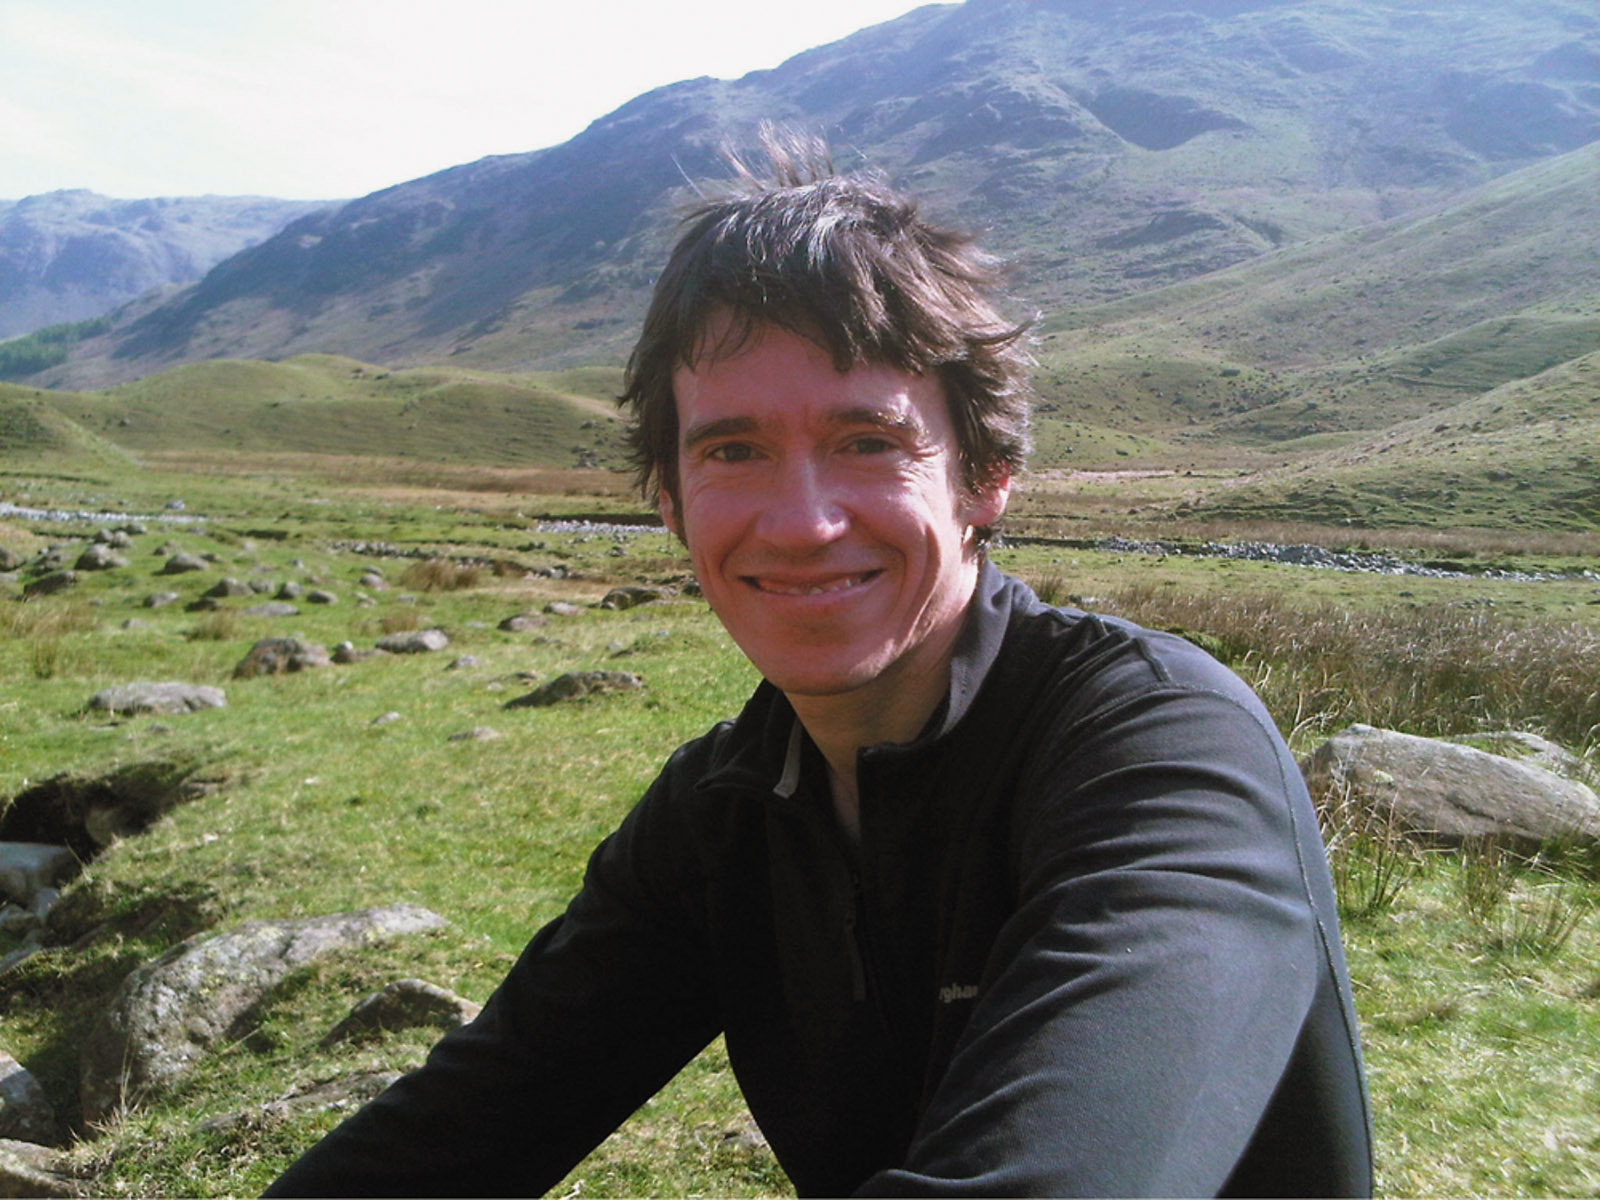 Rory Stewart in the Lake District, Cumbria, northwest England, 2011